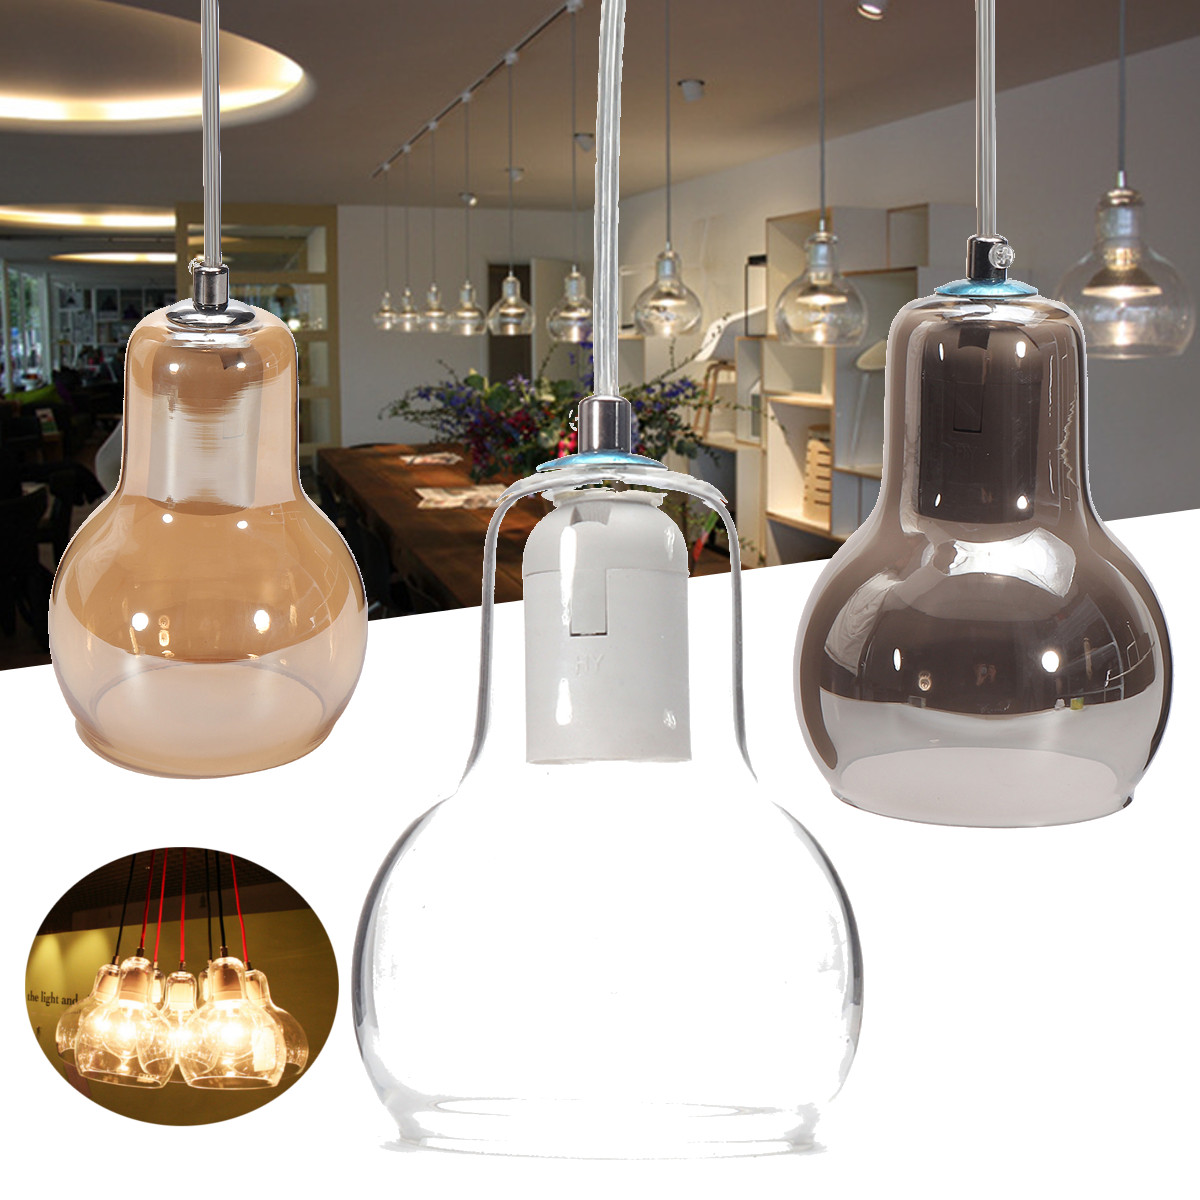 Glass Jar Lamp Shade Meigar Vintage Industrial Lighting Shade Pendant Lamp Shade